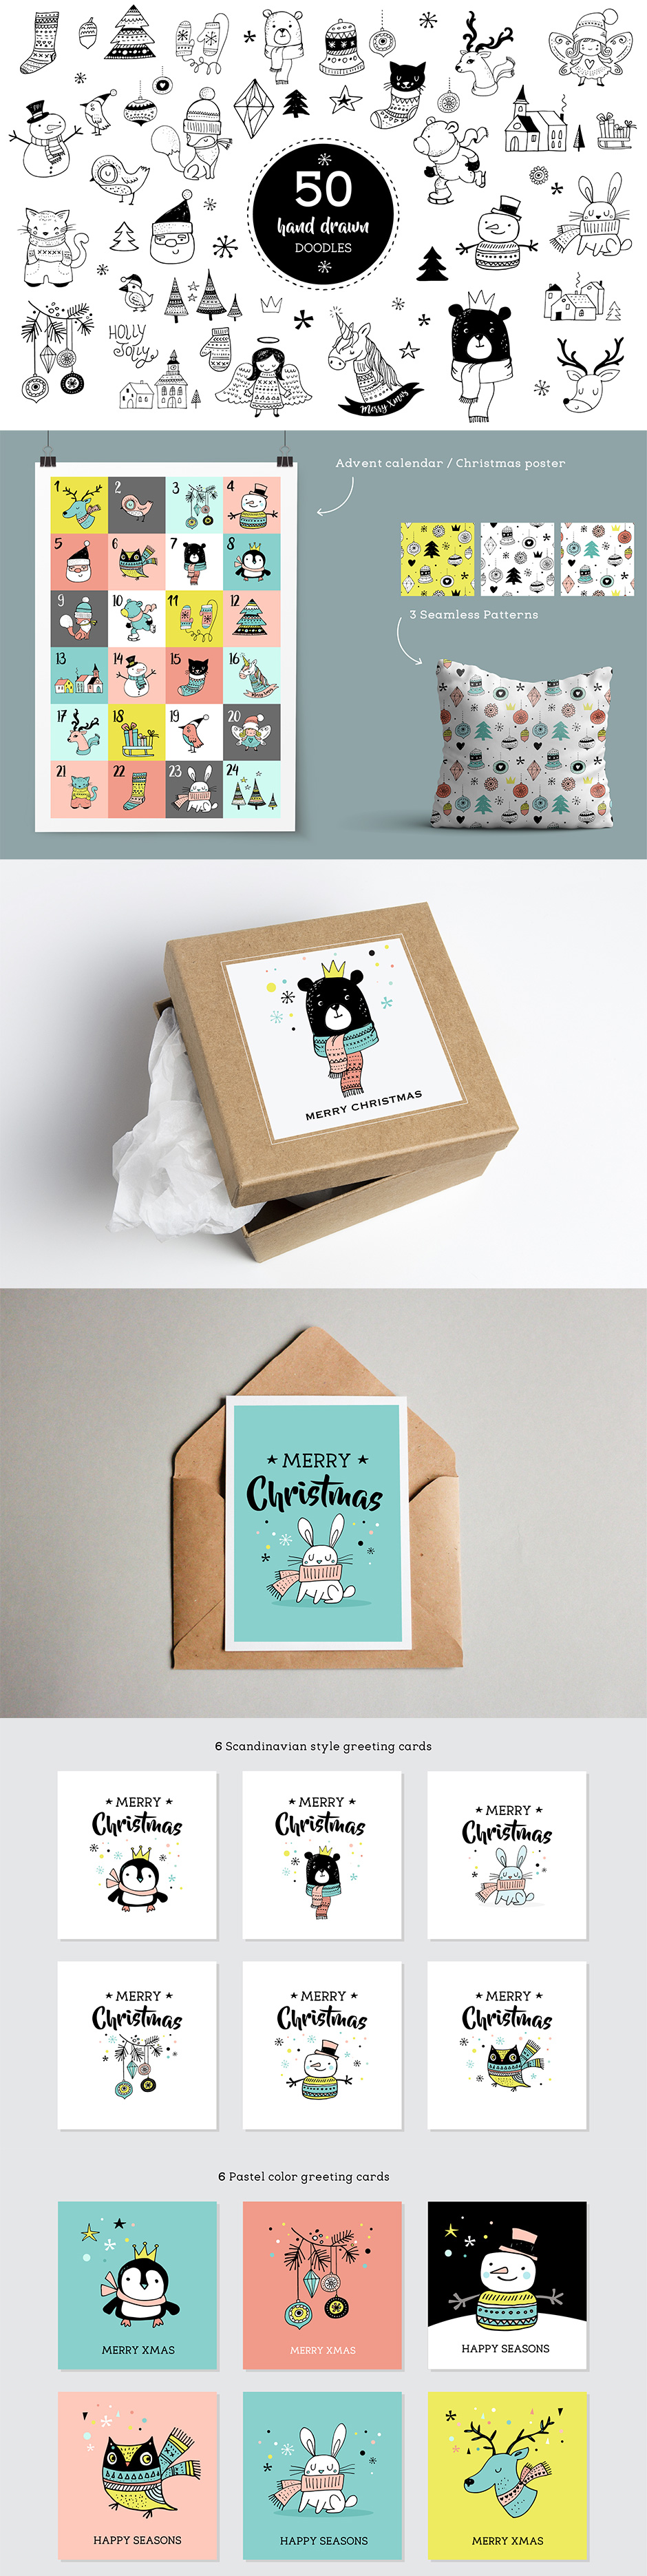 Merry Christmas Greetings Cards & Doodles